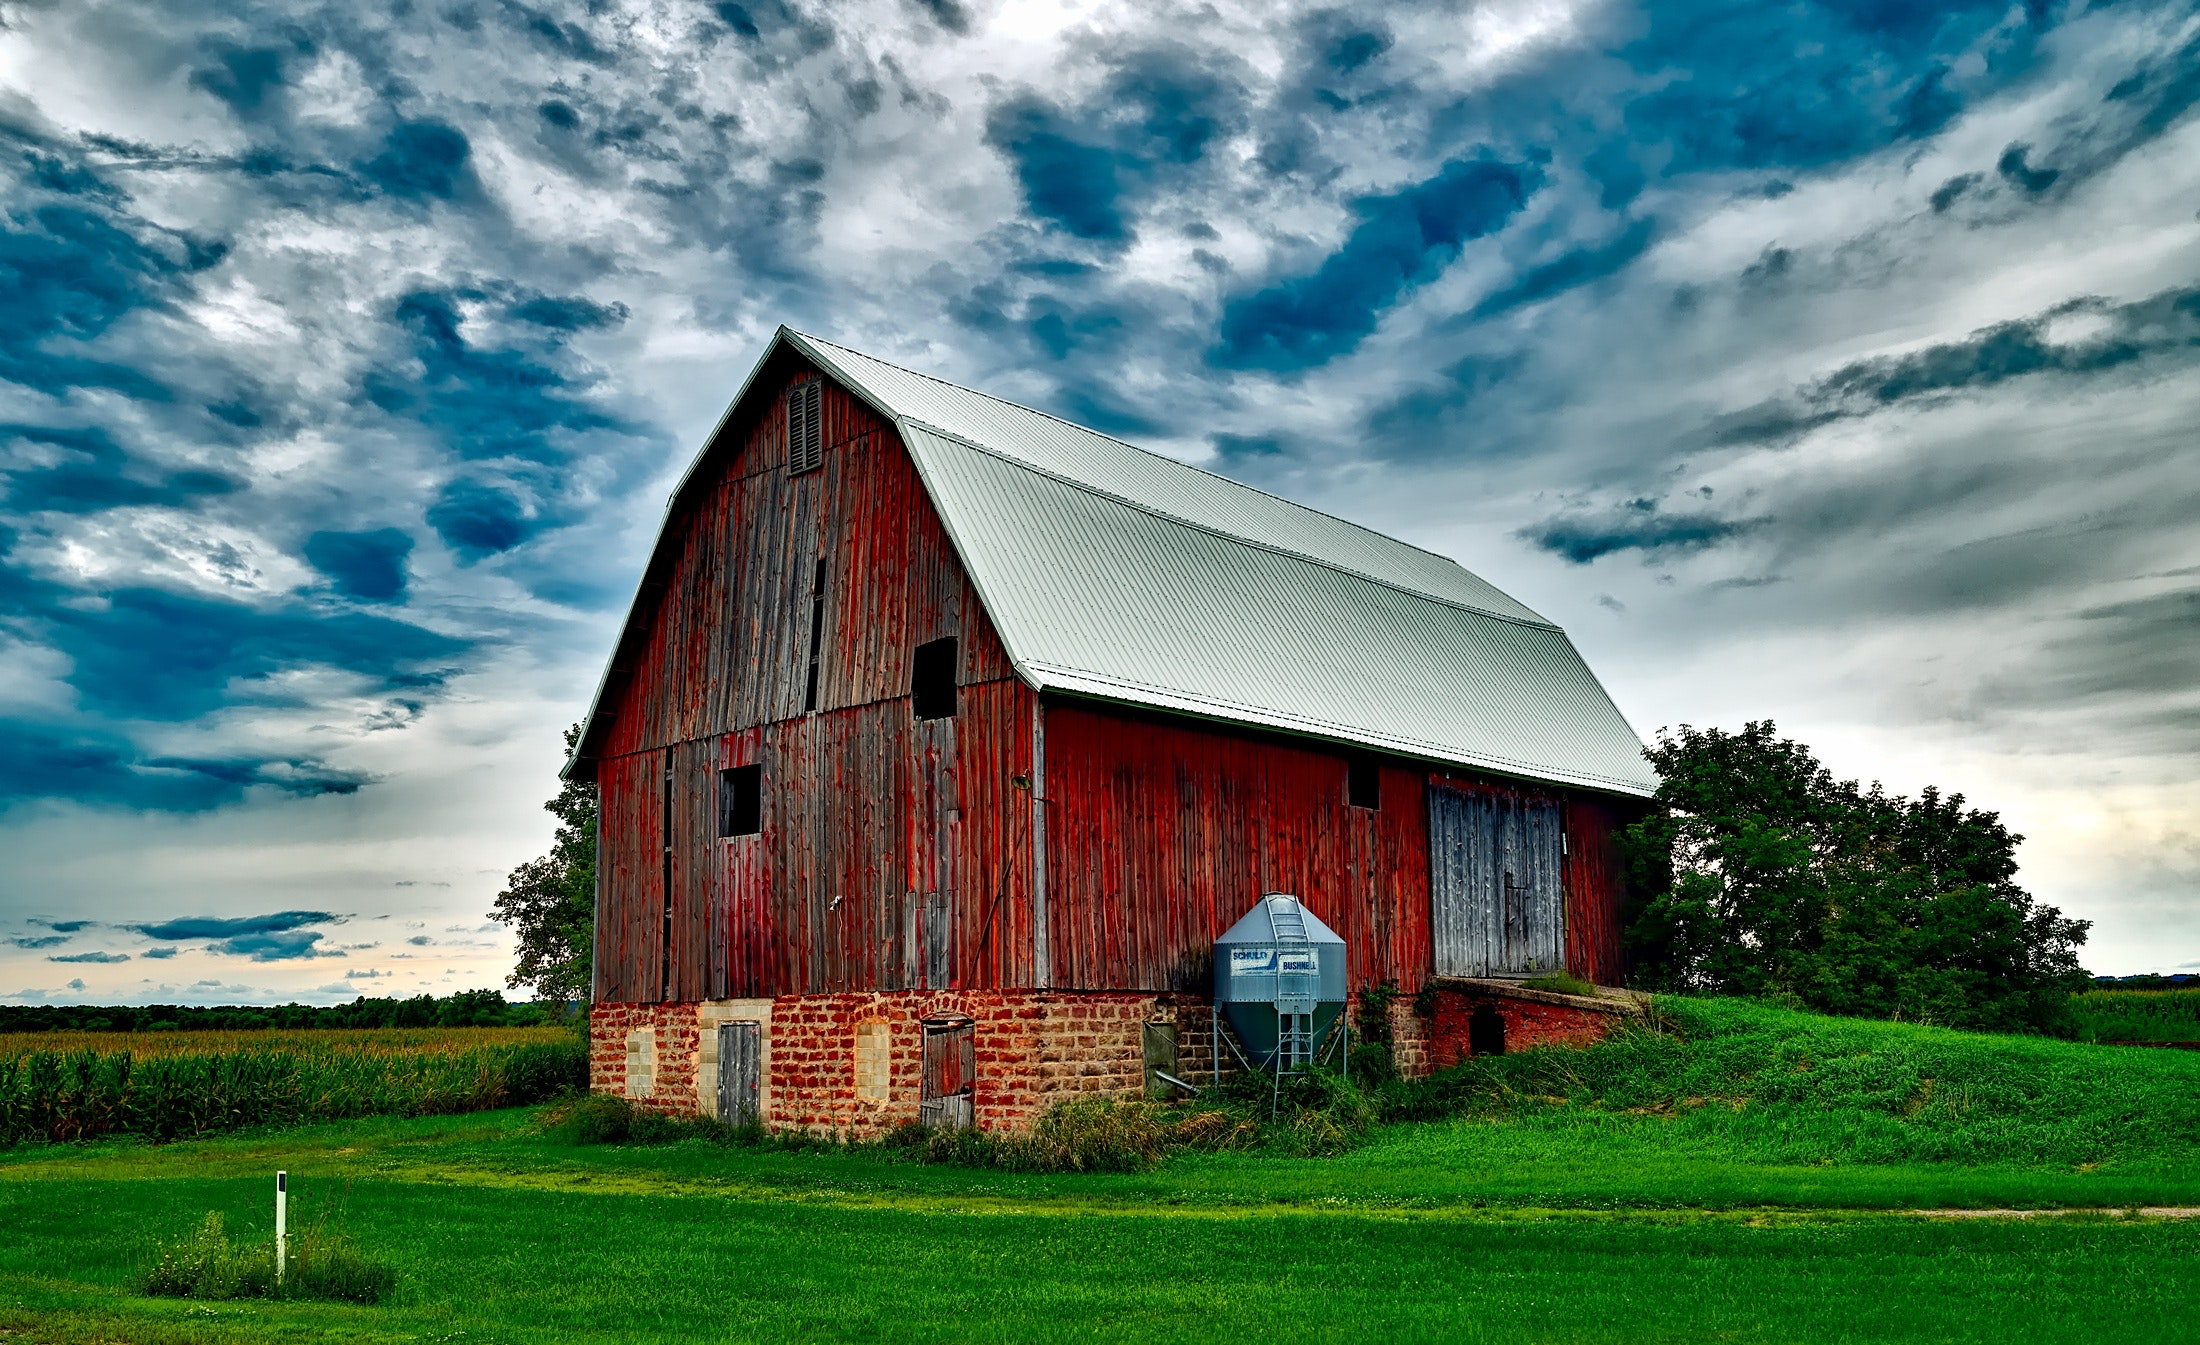 A Barn in a field in front of a cloudy sky.